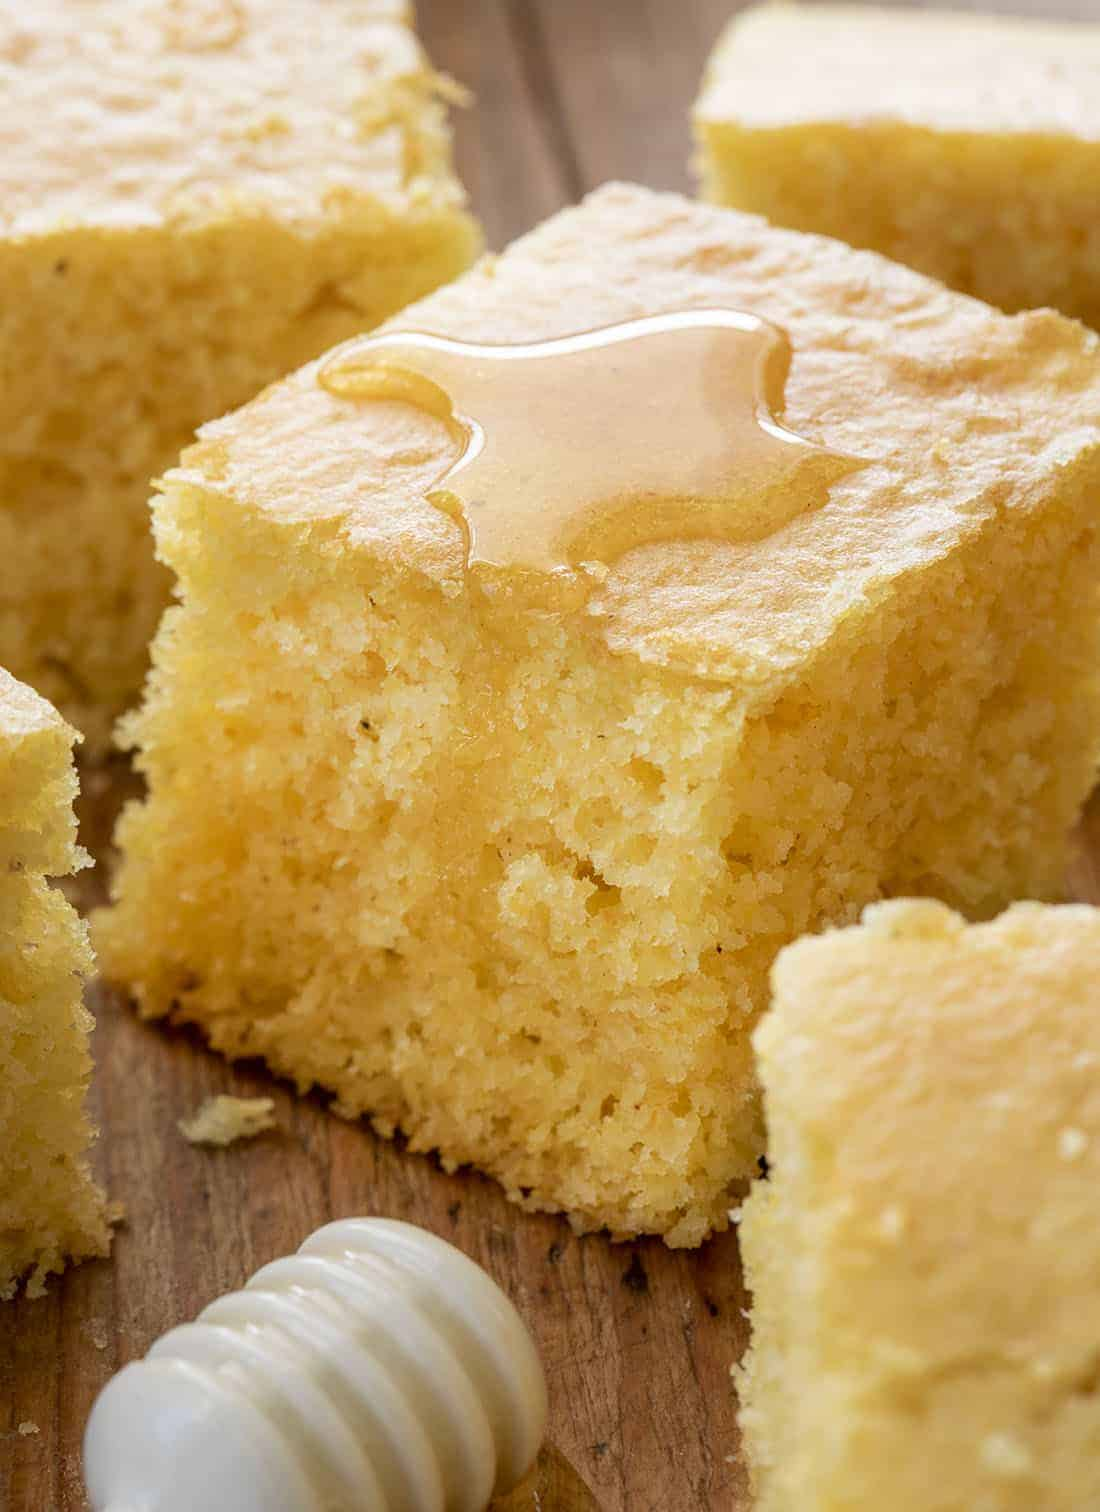 Slice of Homemade Cornbread with Honey Drizzled on Top